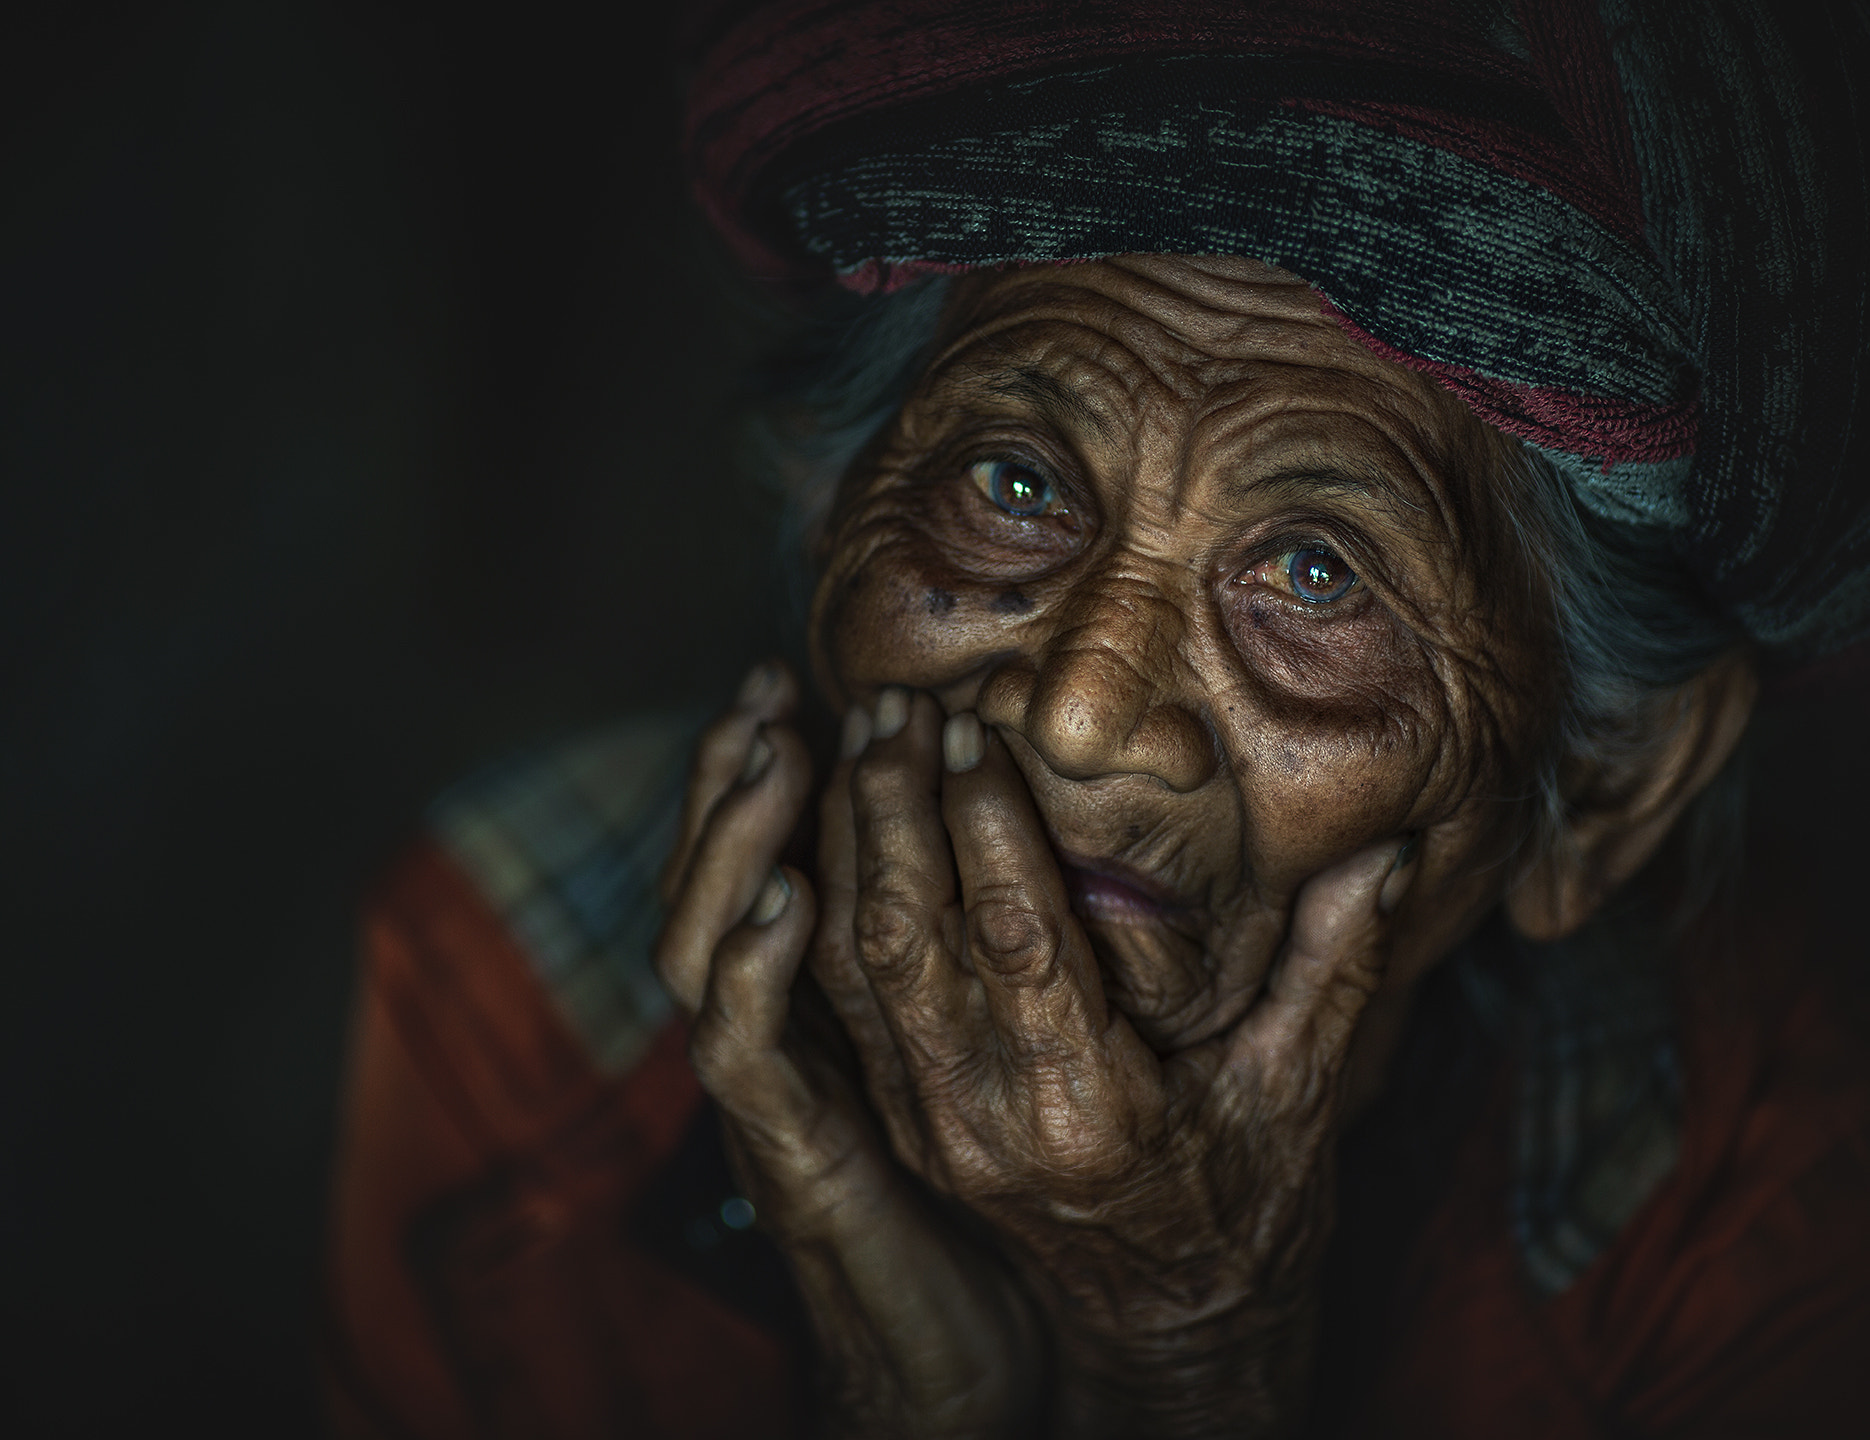 Photograph PORTRAIT FROM BALI by abe less on 500px